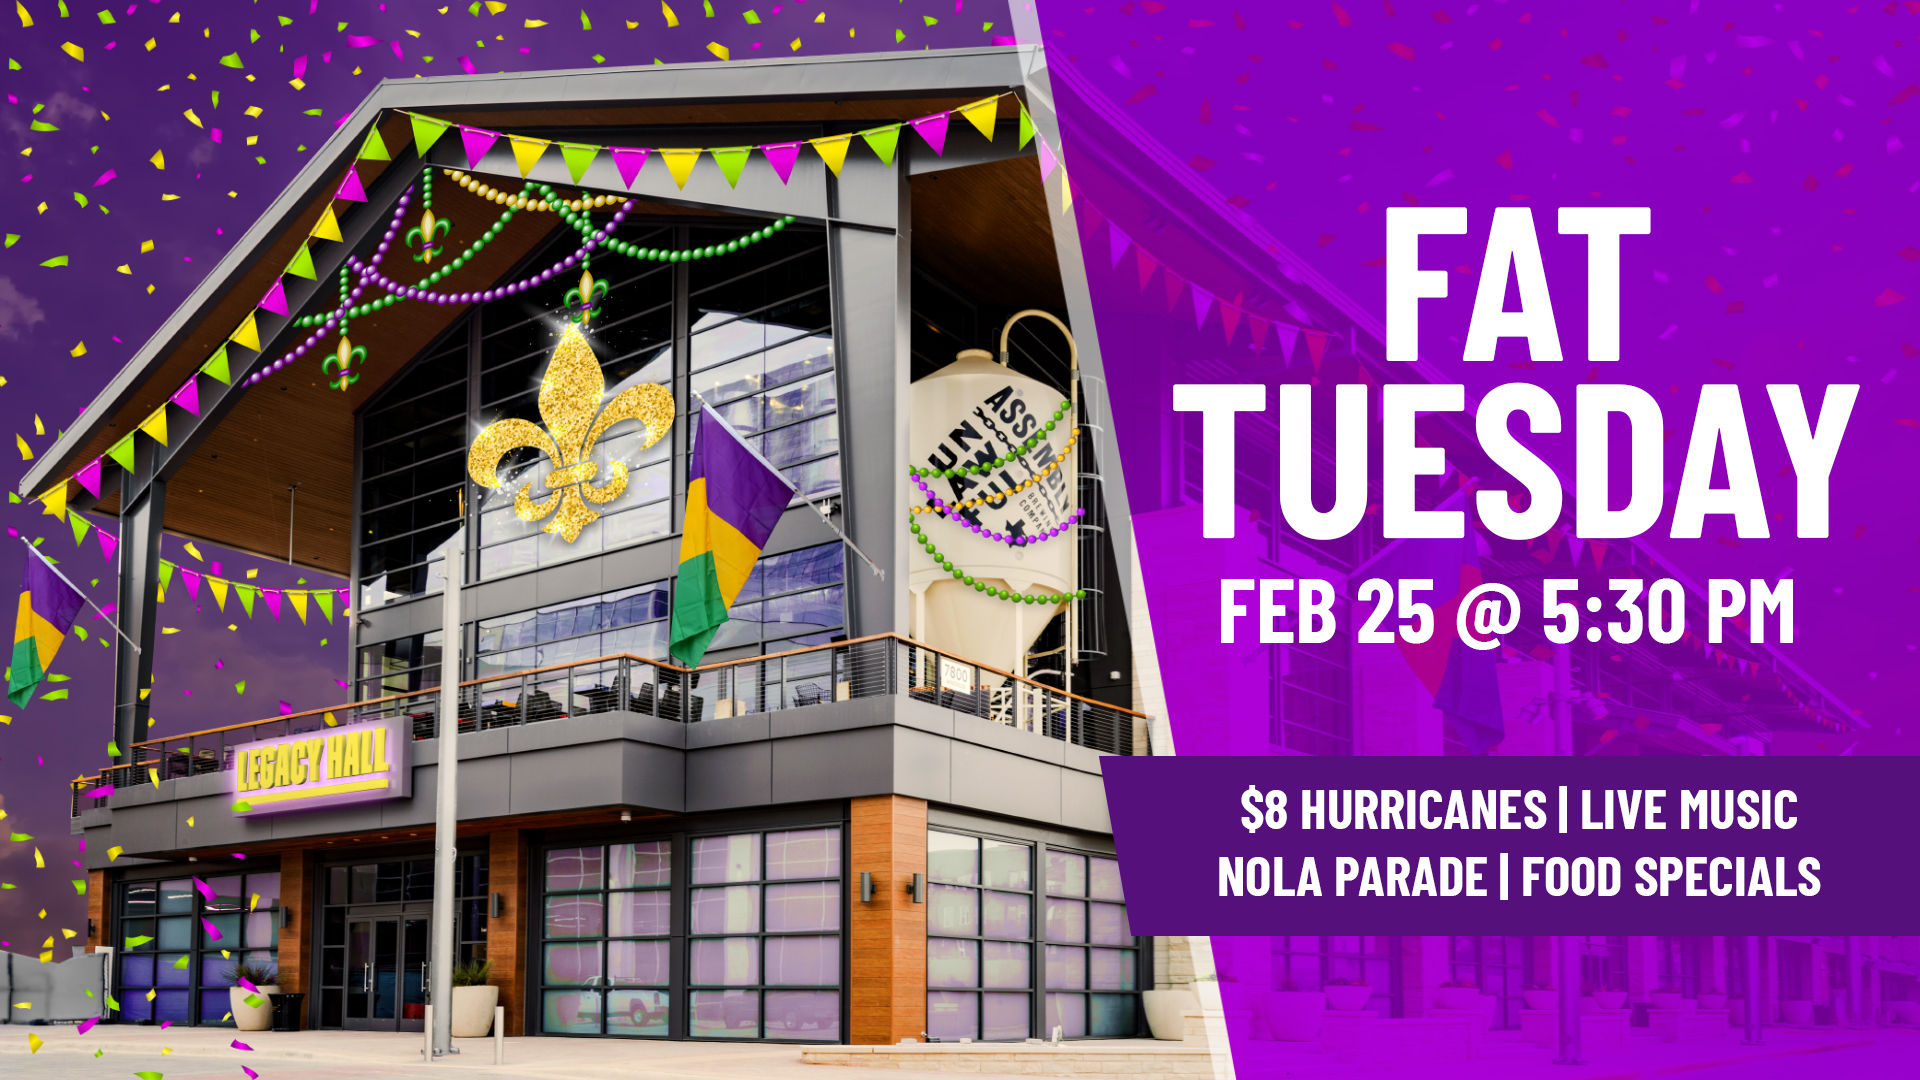 Promo image of Fat Tuesday at Legacy Hall